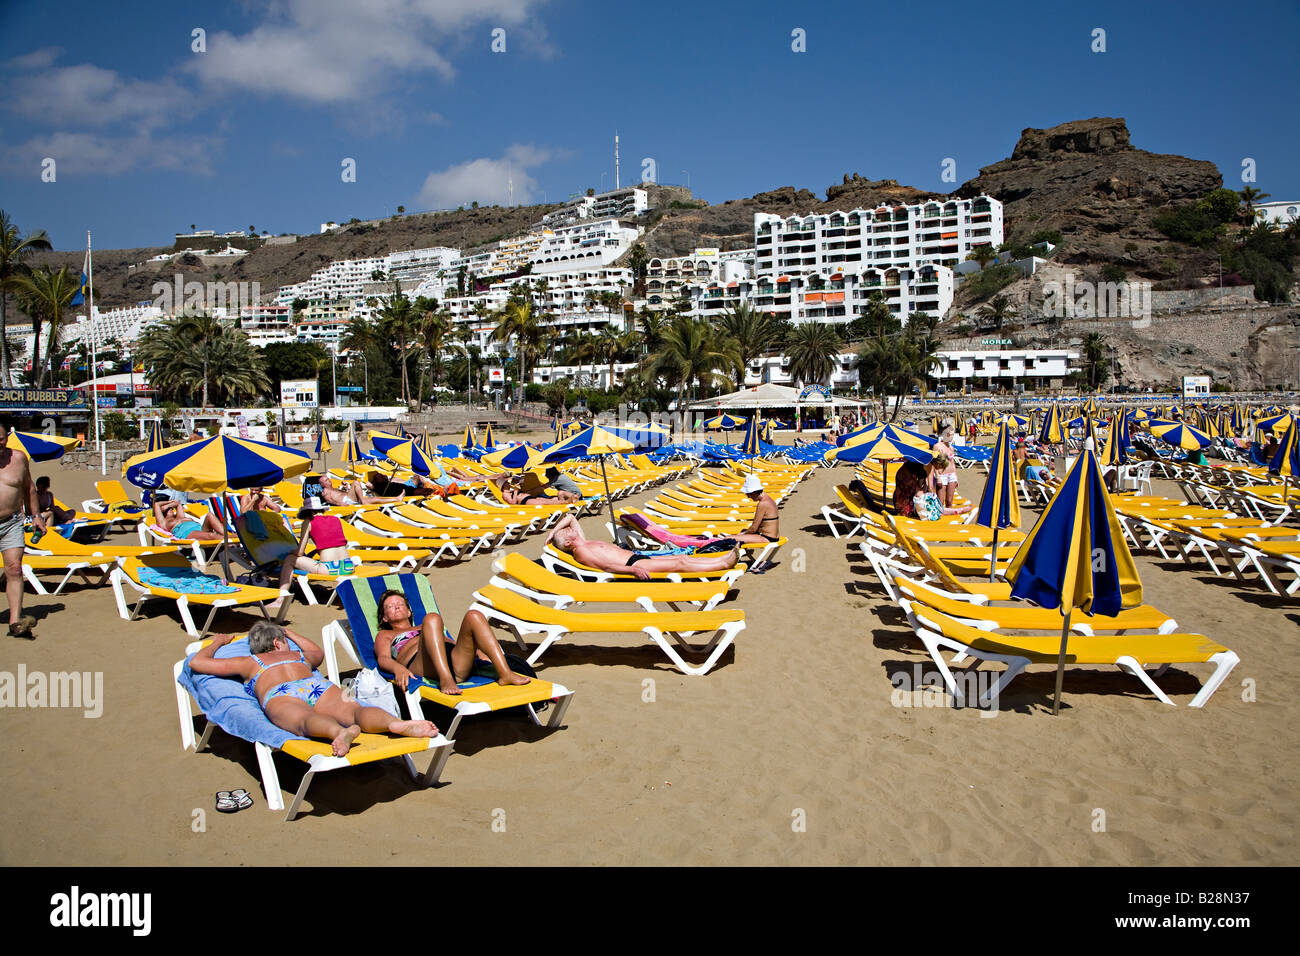 People on beach loungers with holiday resort apartments on hill Puerto Rico Gran Canaria Spain - Stock Image